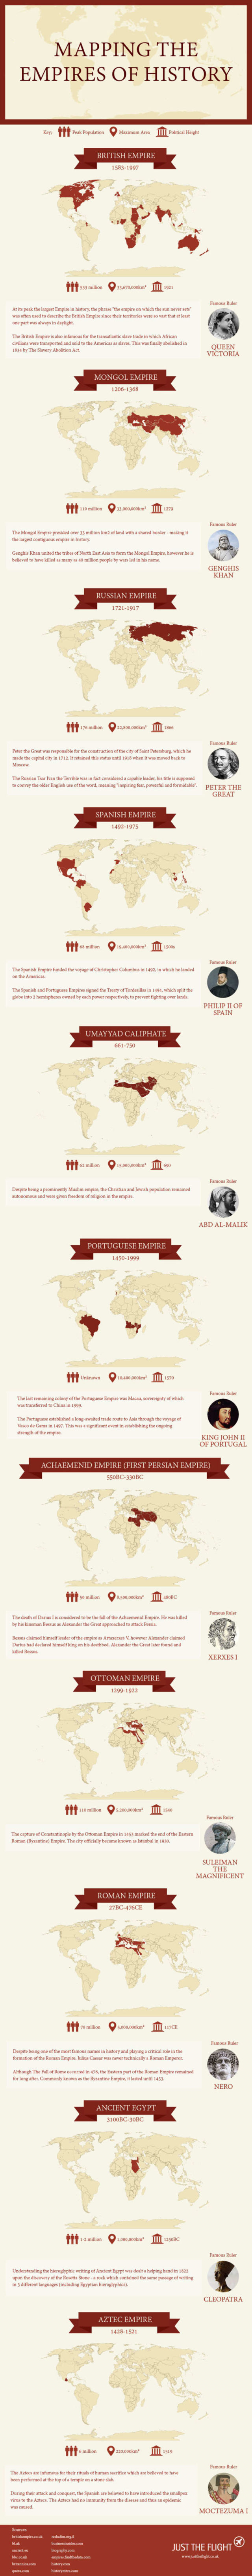 Mapping the Empires of History